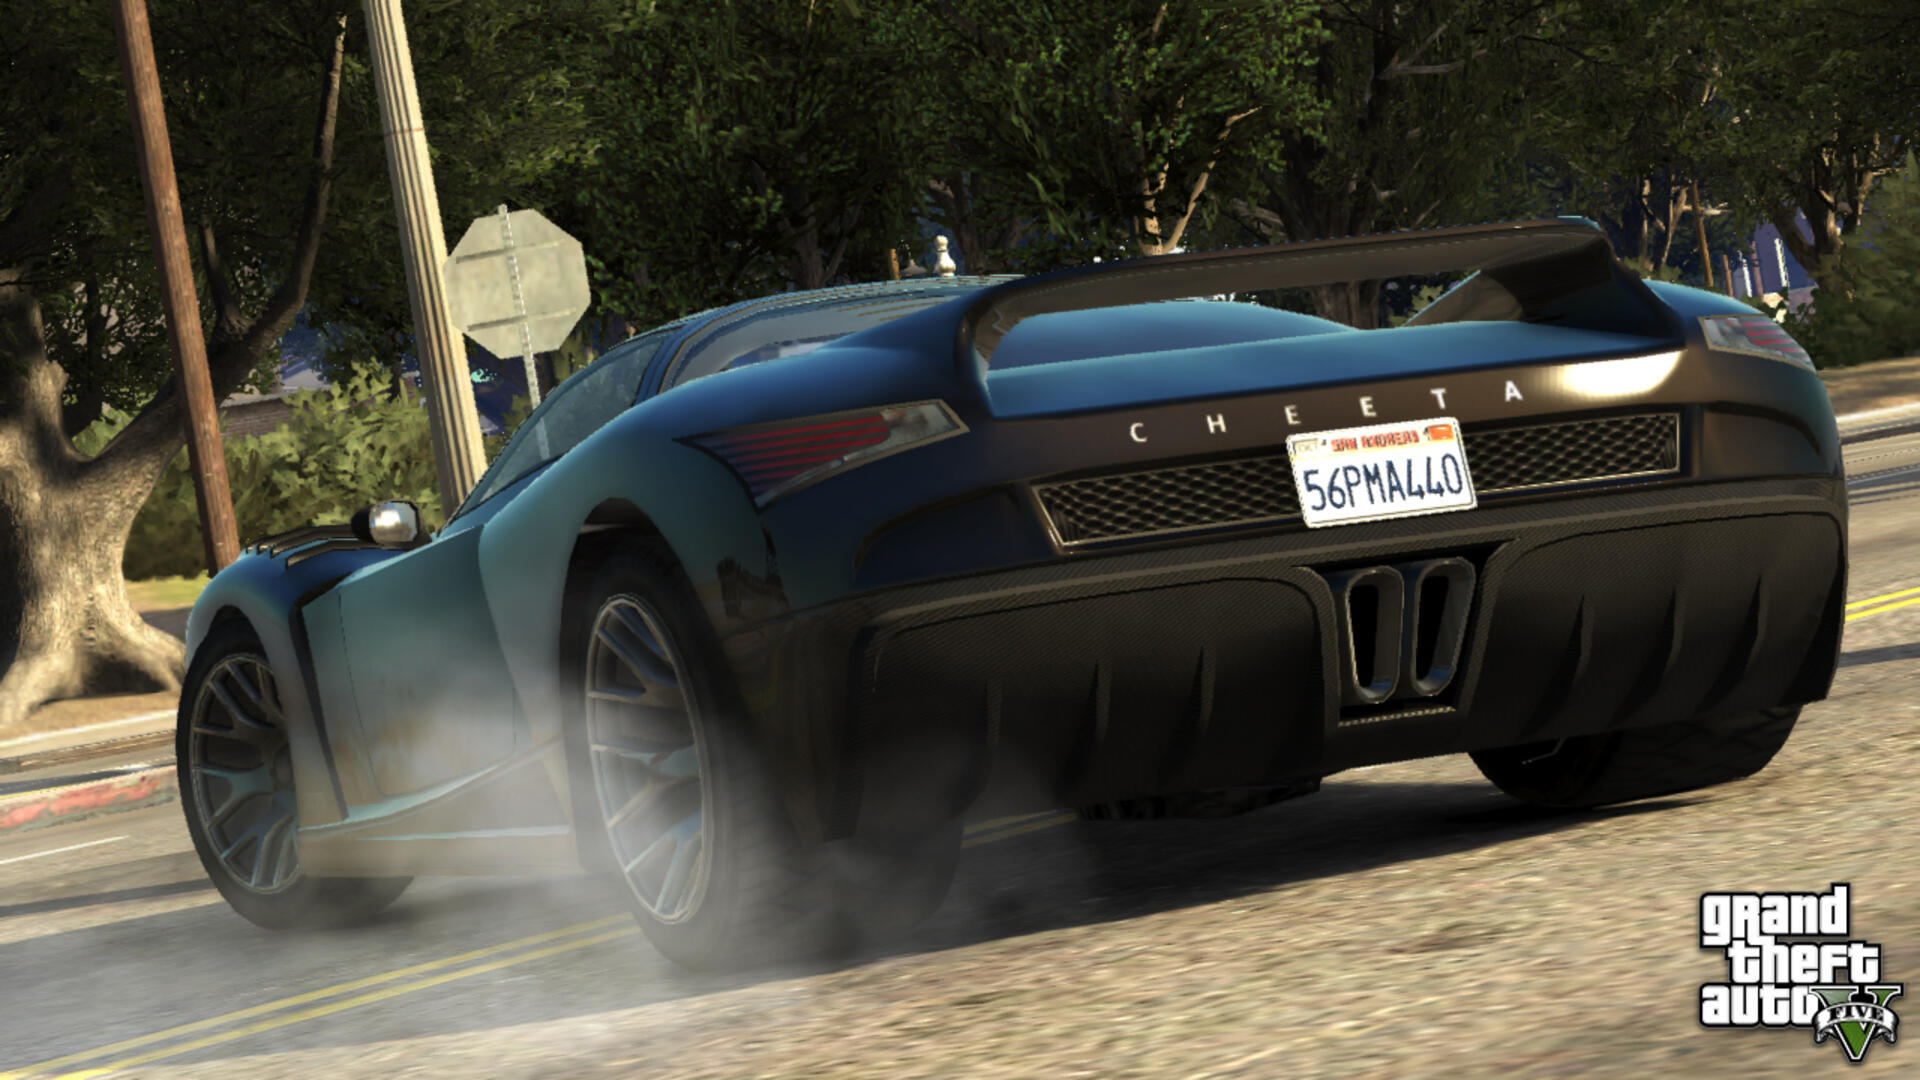 GTA Online: How to Win Street Races, Rally Racing Tips, Best